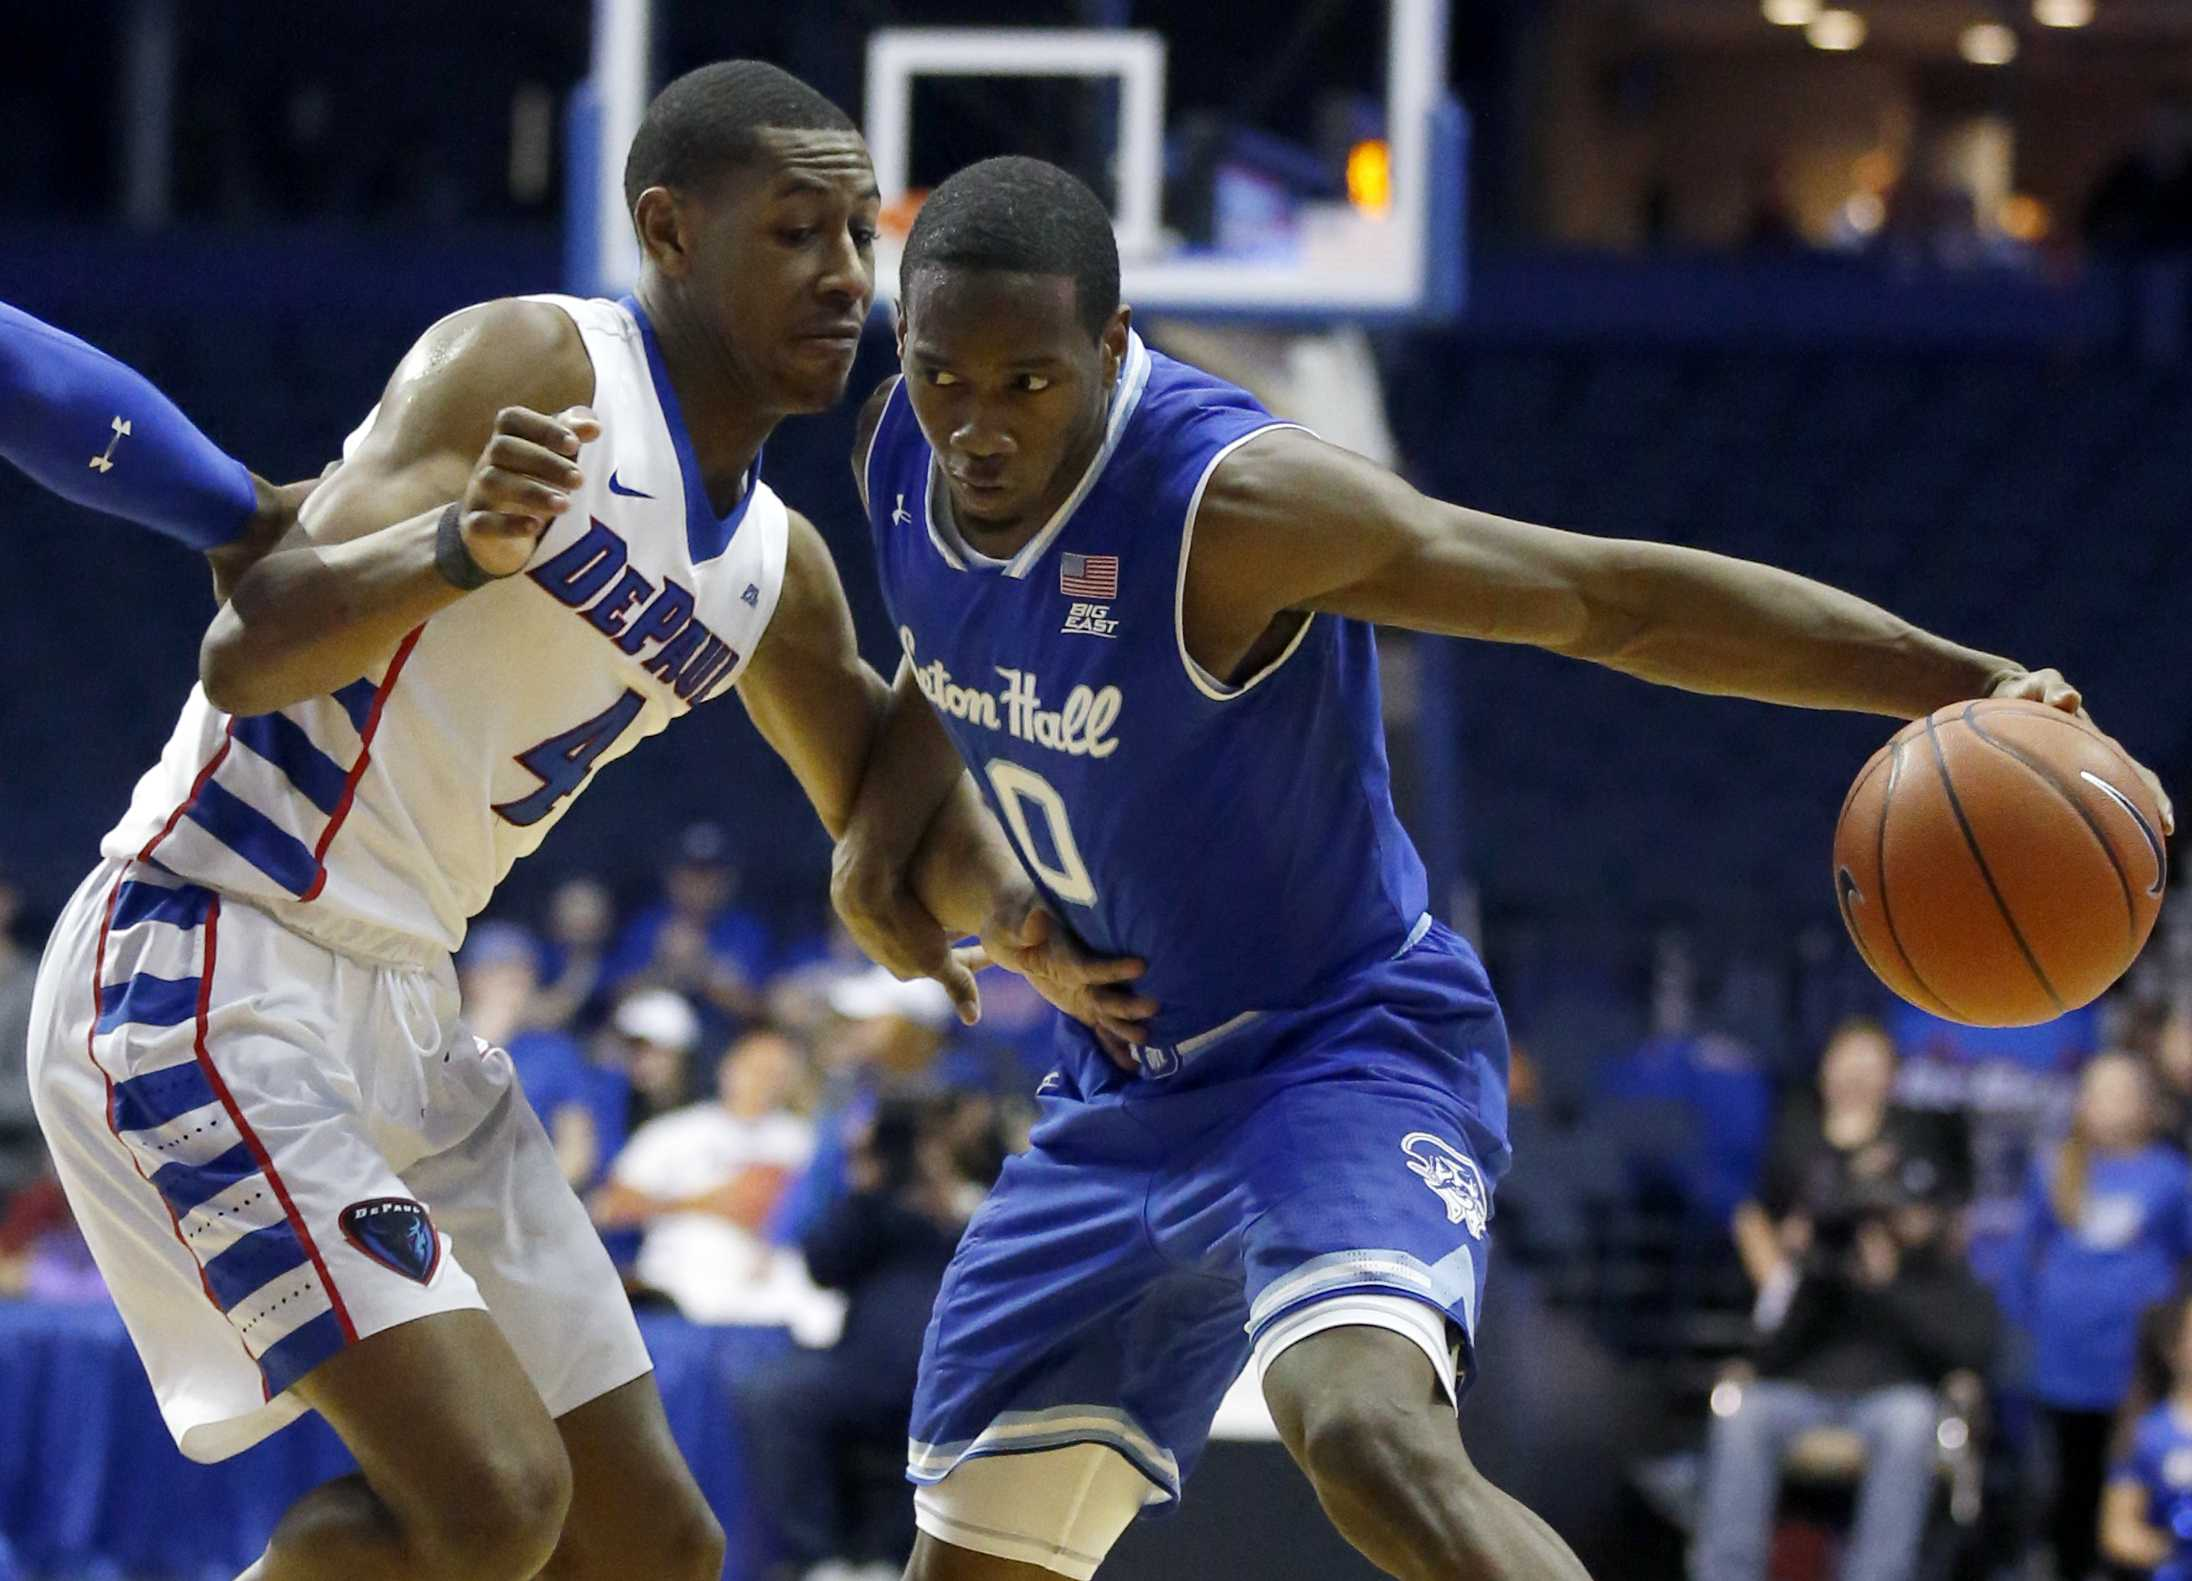 Seton Hall guard Khadeen Carrington, right, drives against DePaul guard Brandon Cyrus during the first half of an NCAA college basketball game Saturday, Feb. 25, 2017, in Rosemont, Ill. (AP Photo/Nam Y. Huh)